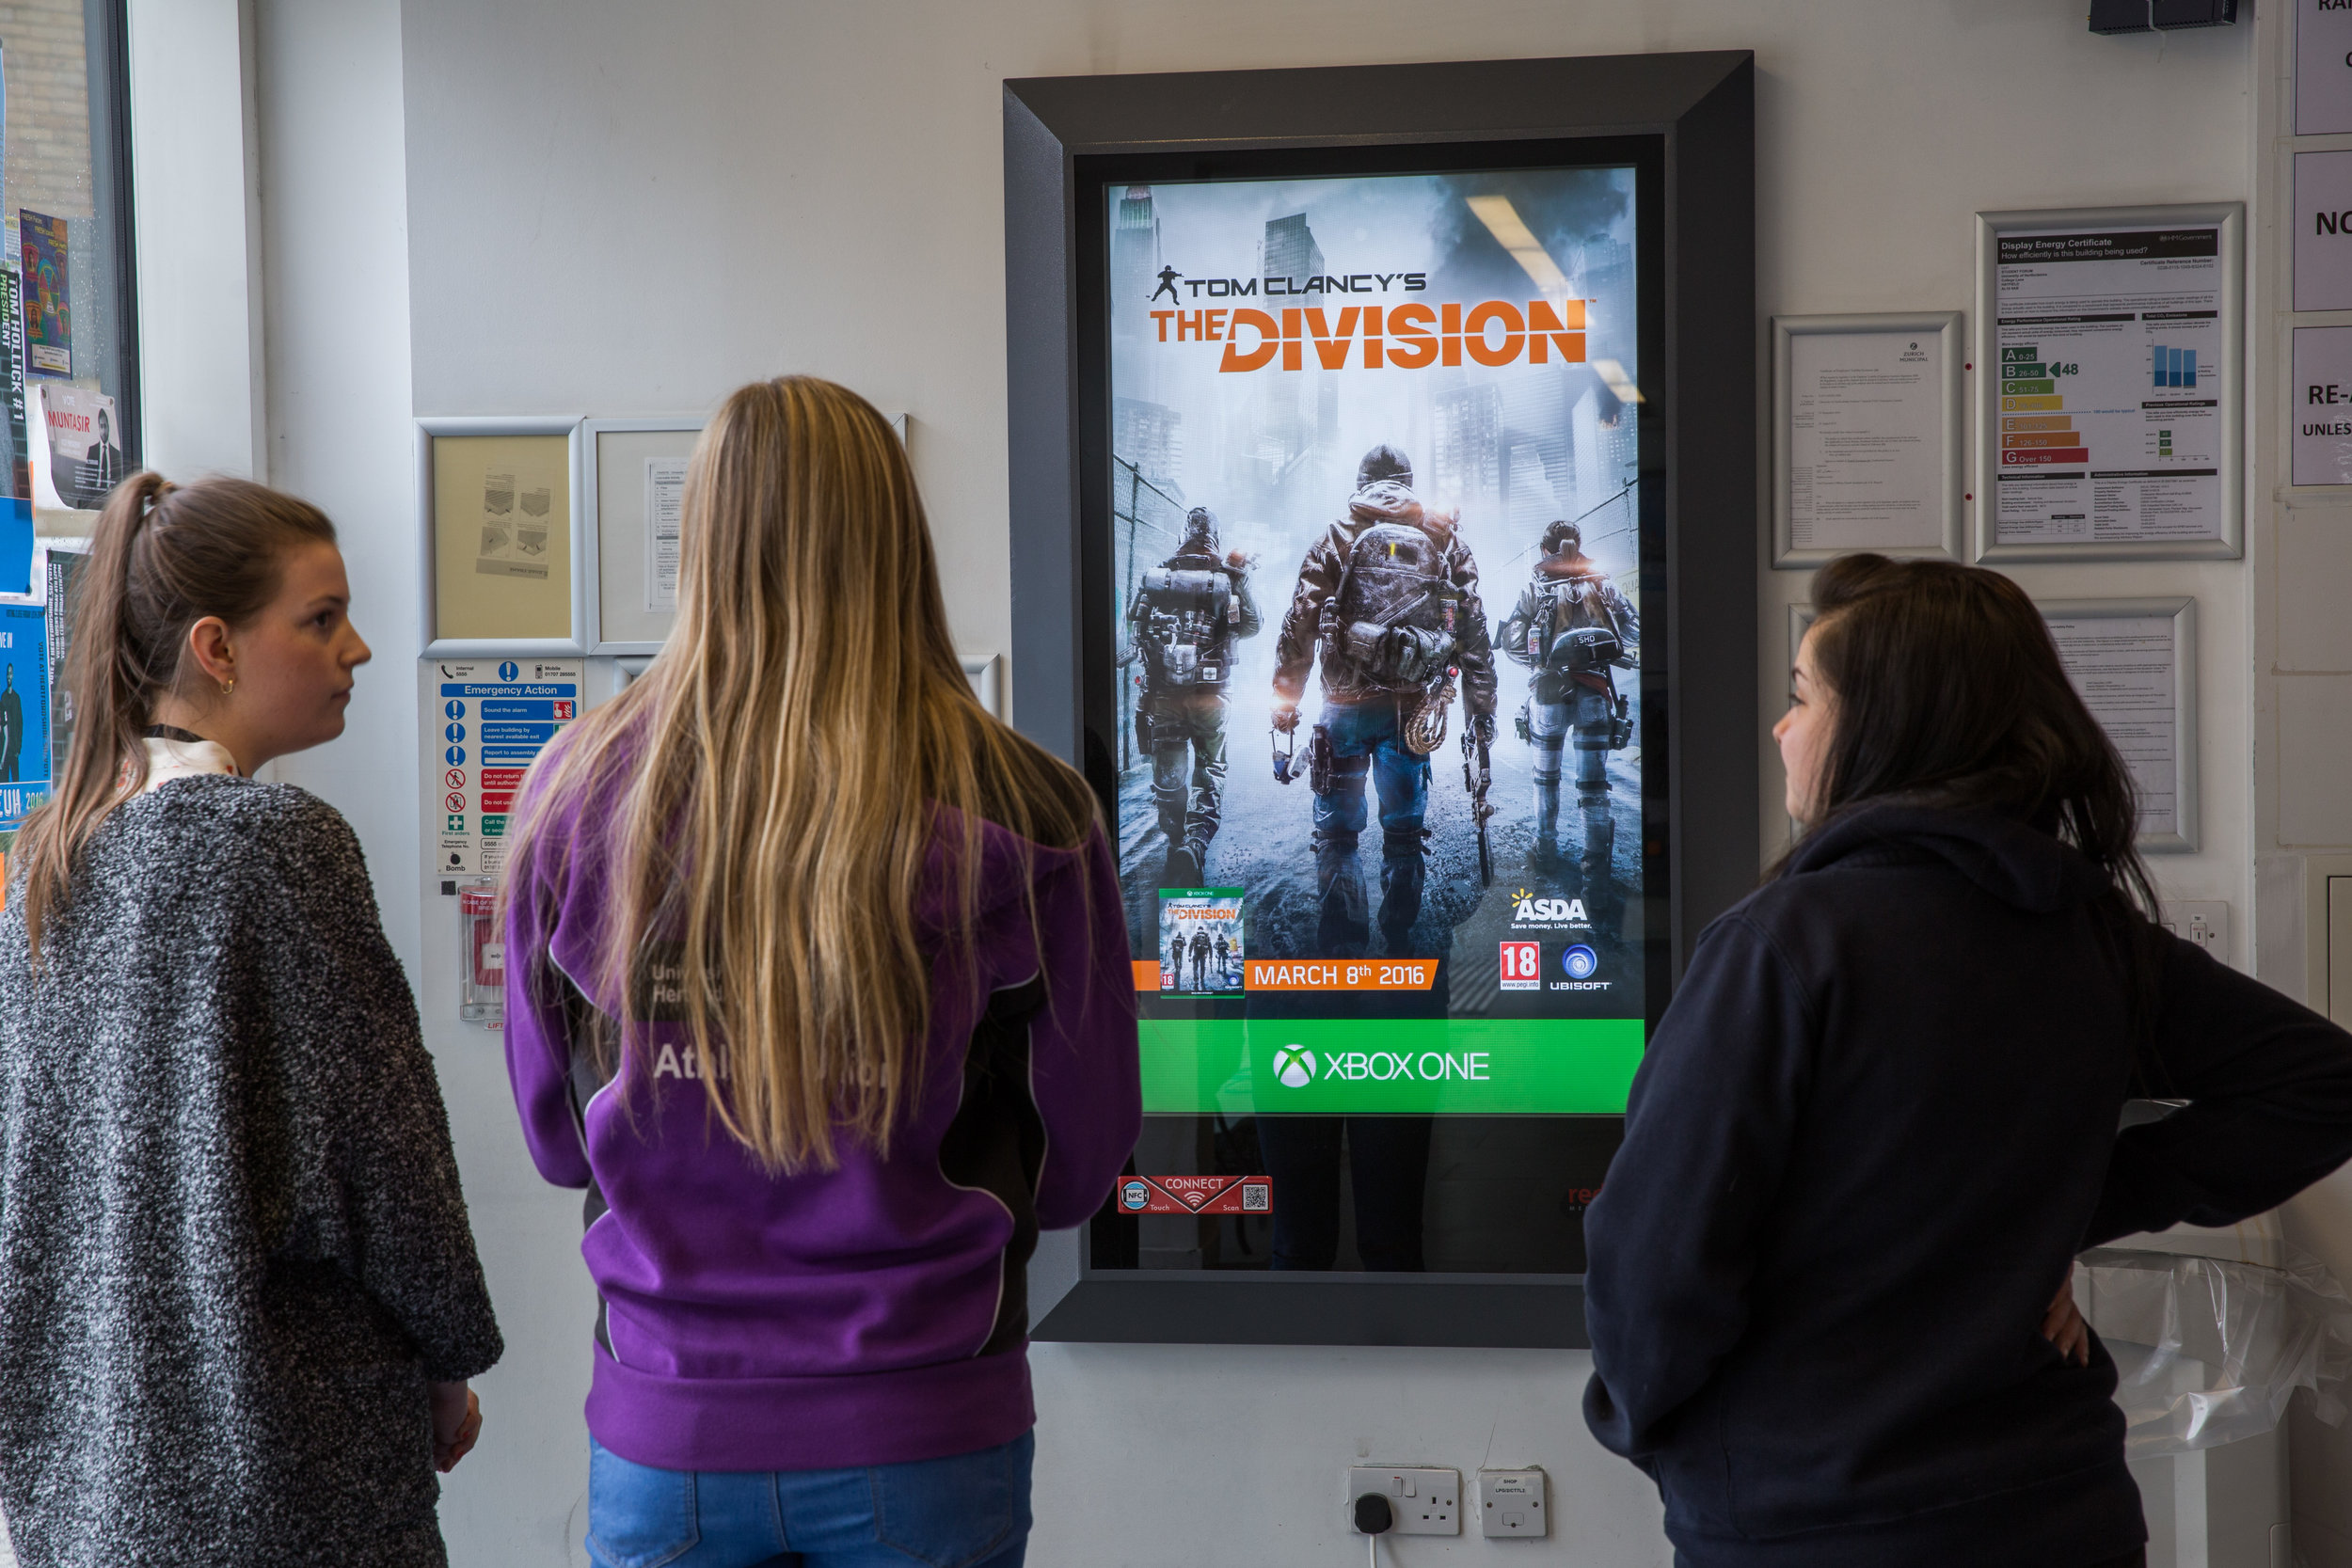 Ubisoft   Ubisoft ran a campaign for Tom Clancy's The Division across our national on-campus D6 network to reach a youth audience in the first week of the game's launch. Click above to see more.